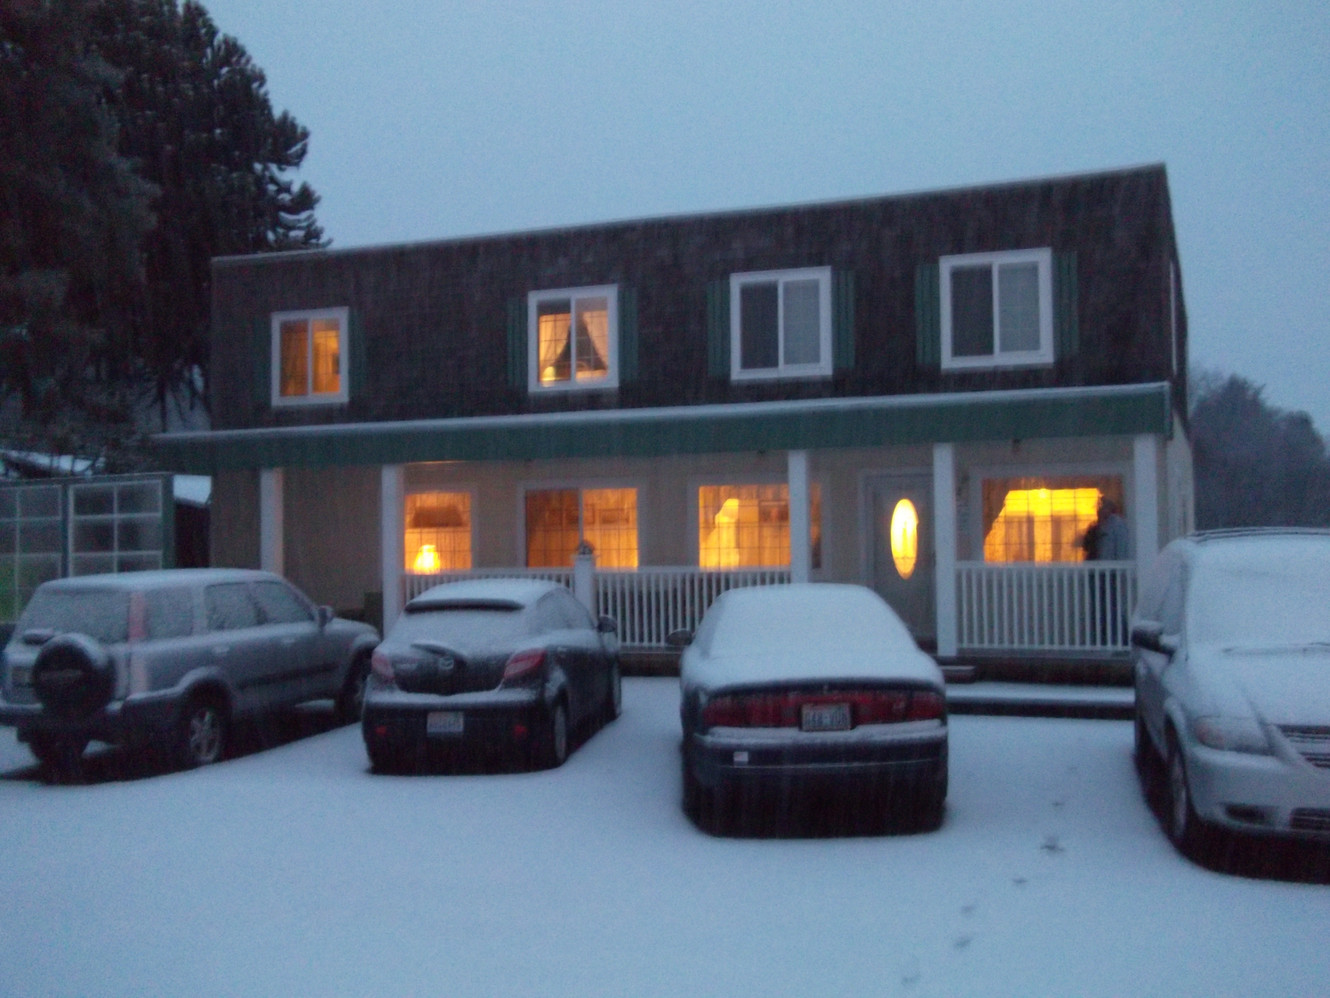 2012 ~ Our SASH Team Retreat Location, Snowed In!